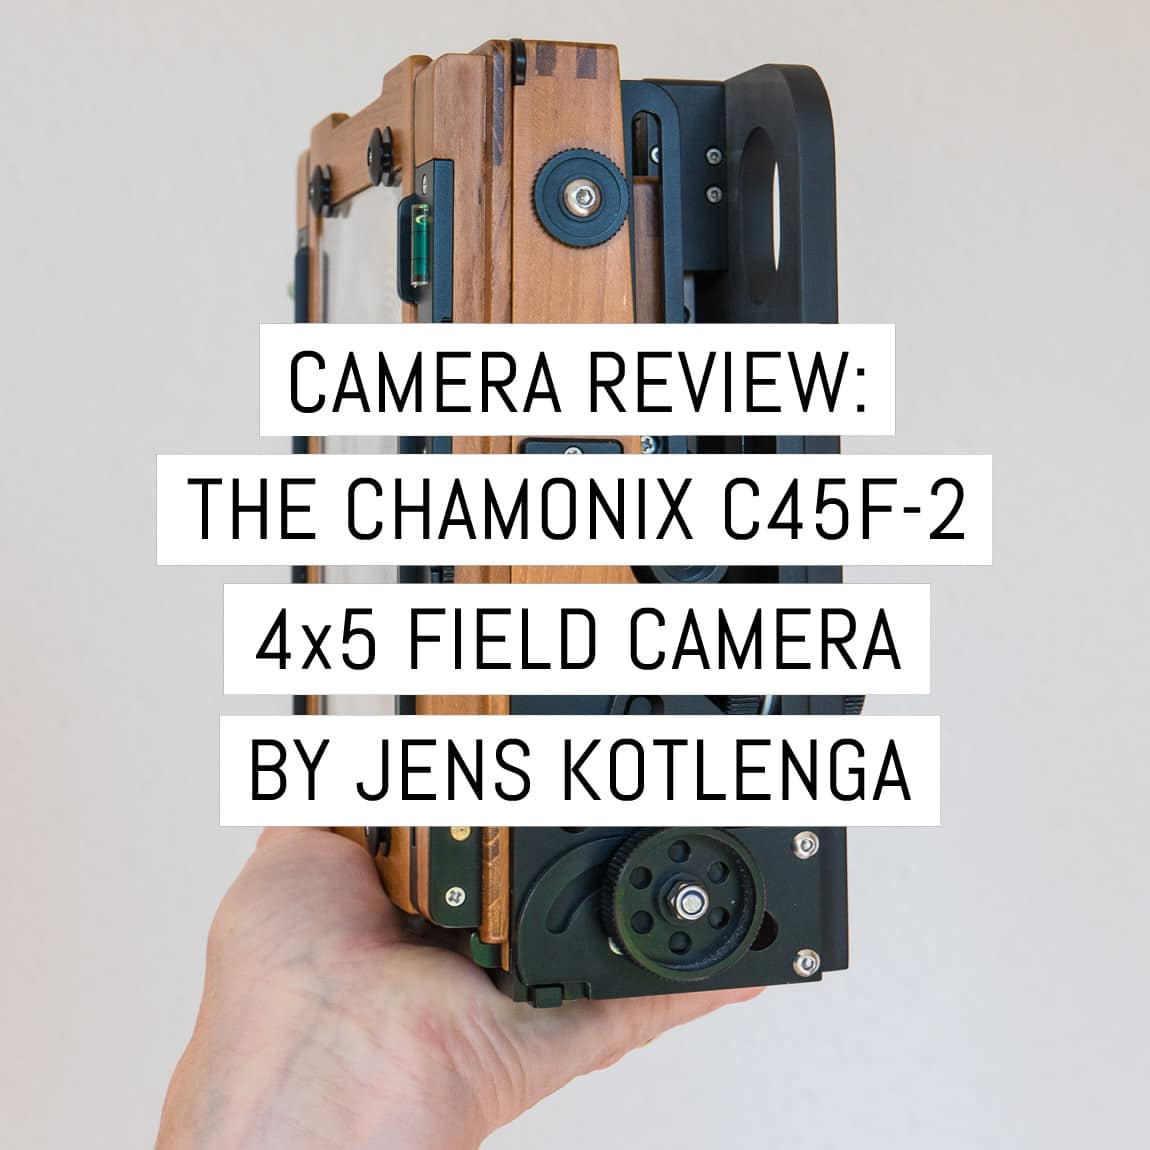 Camera review: teak wood meets carbon fibre, the Chamonix C45F-2 4x5